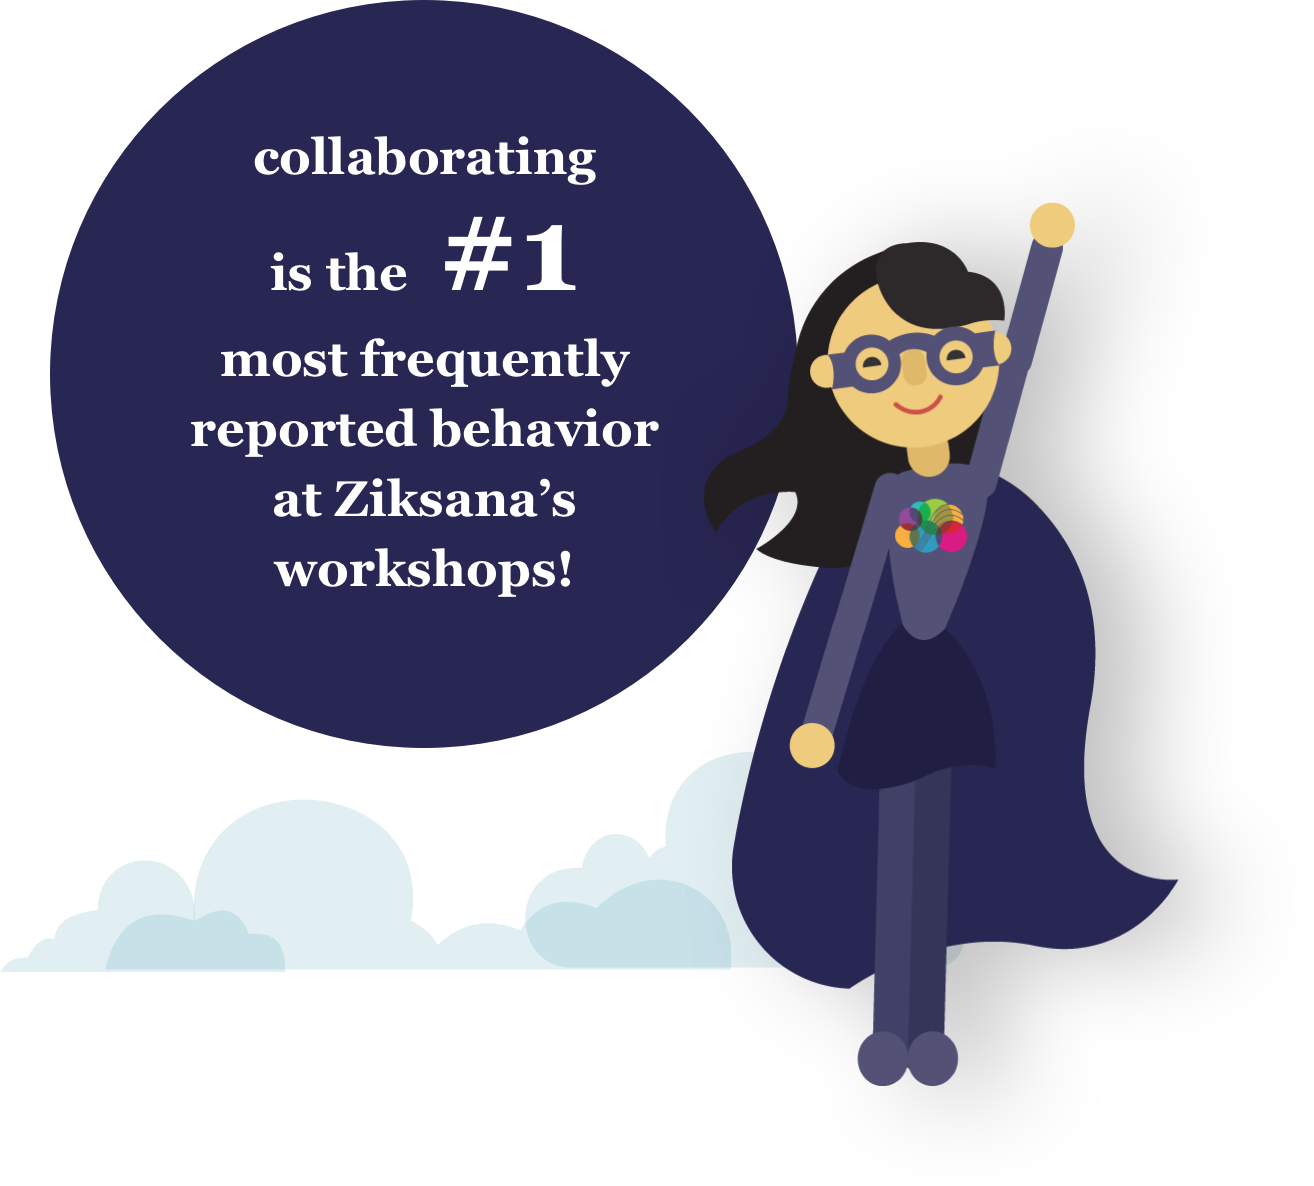 Collaborating is the #1 most frequently reported behavior at Ziksana's workshops!